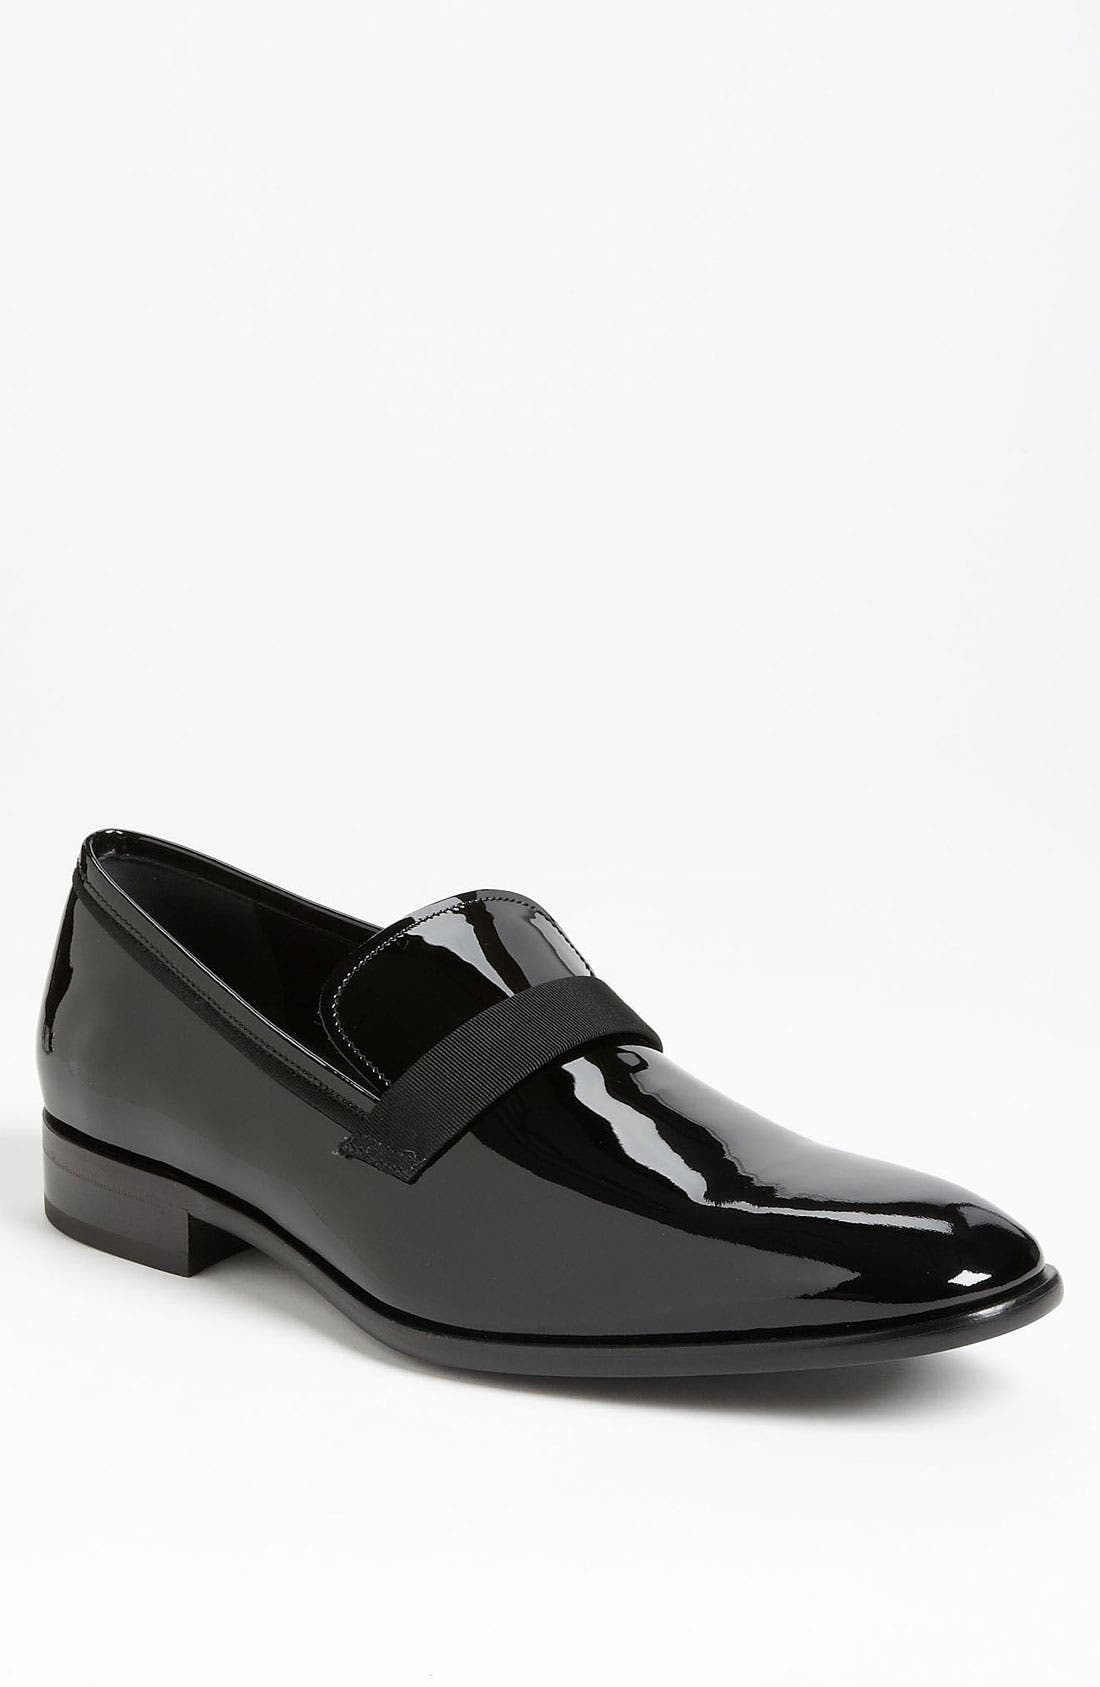 Alternate Image 1 Selected - Salvatore Ferragamo 'Antoane' Formal Loafer